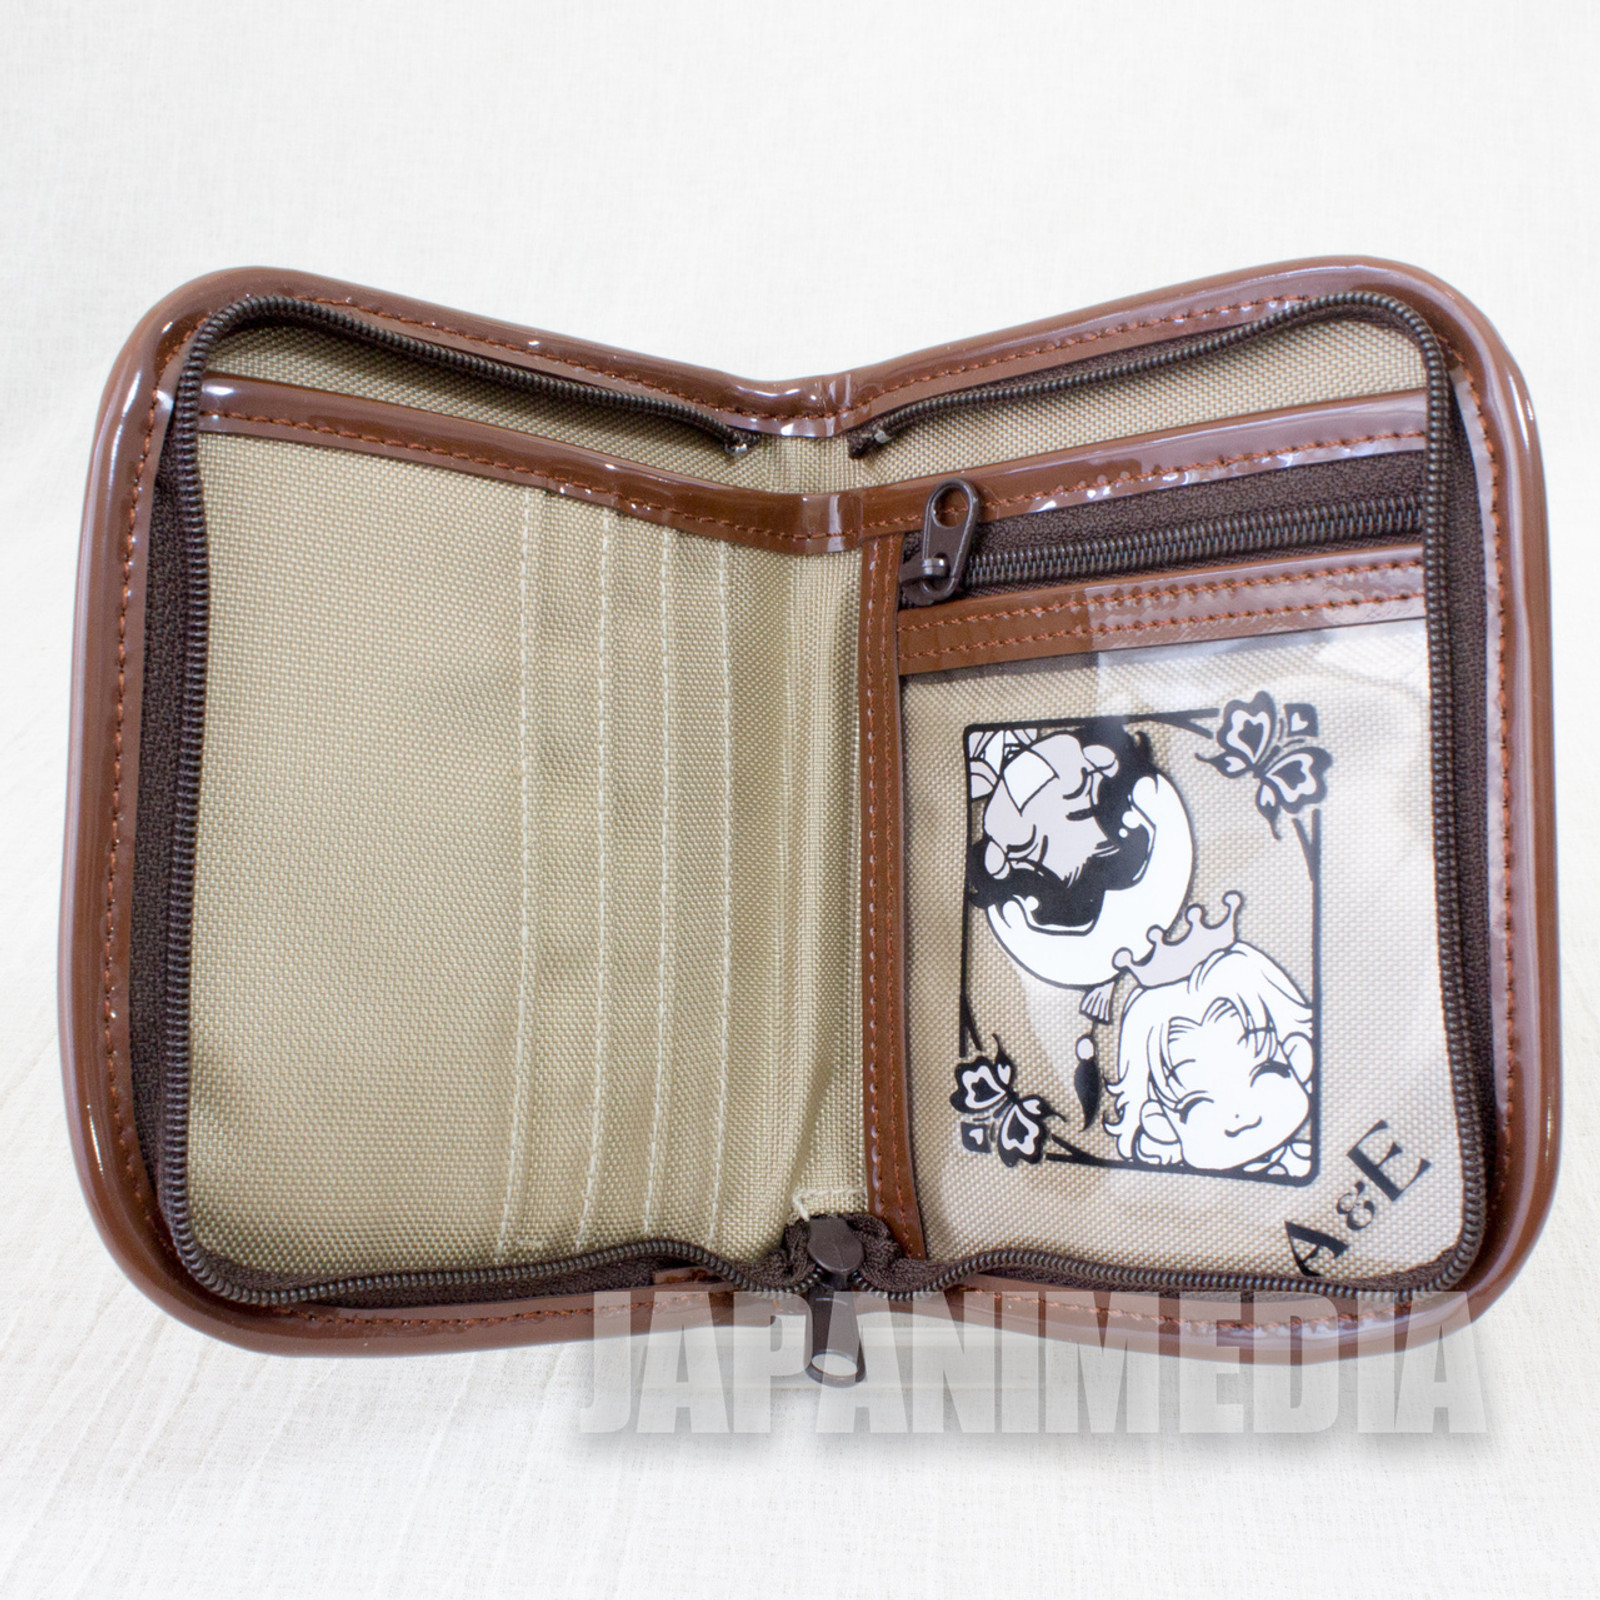 RARE!! Koucha Ouji (Tea Prince) Folded wallet [ Earl Grey / Assam ] JAPAN MANGA